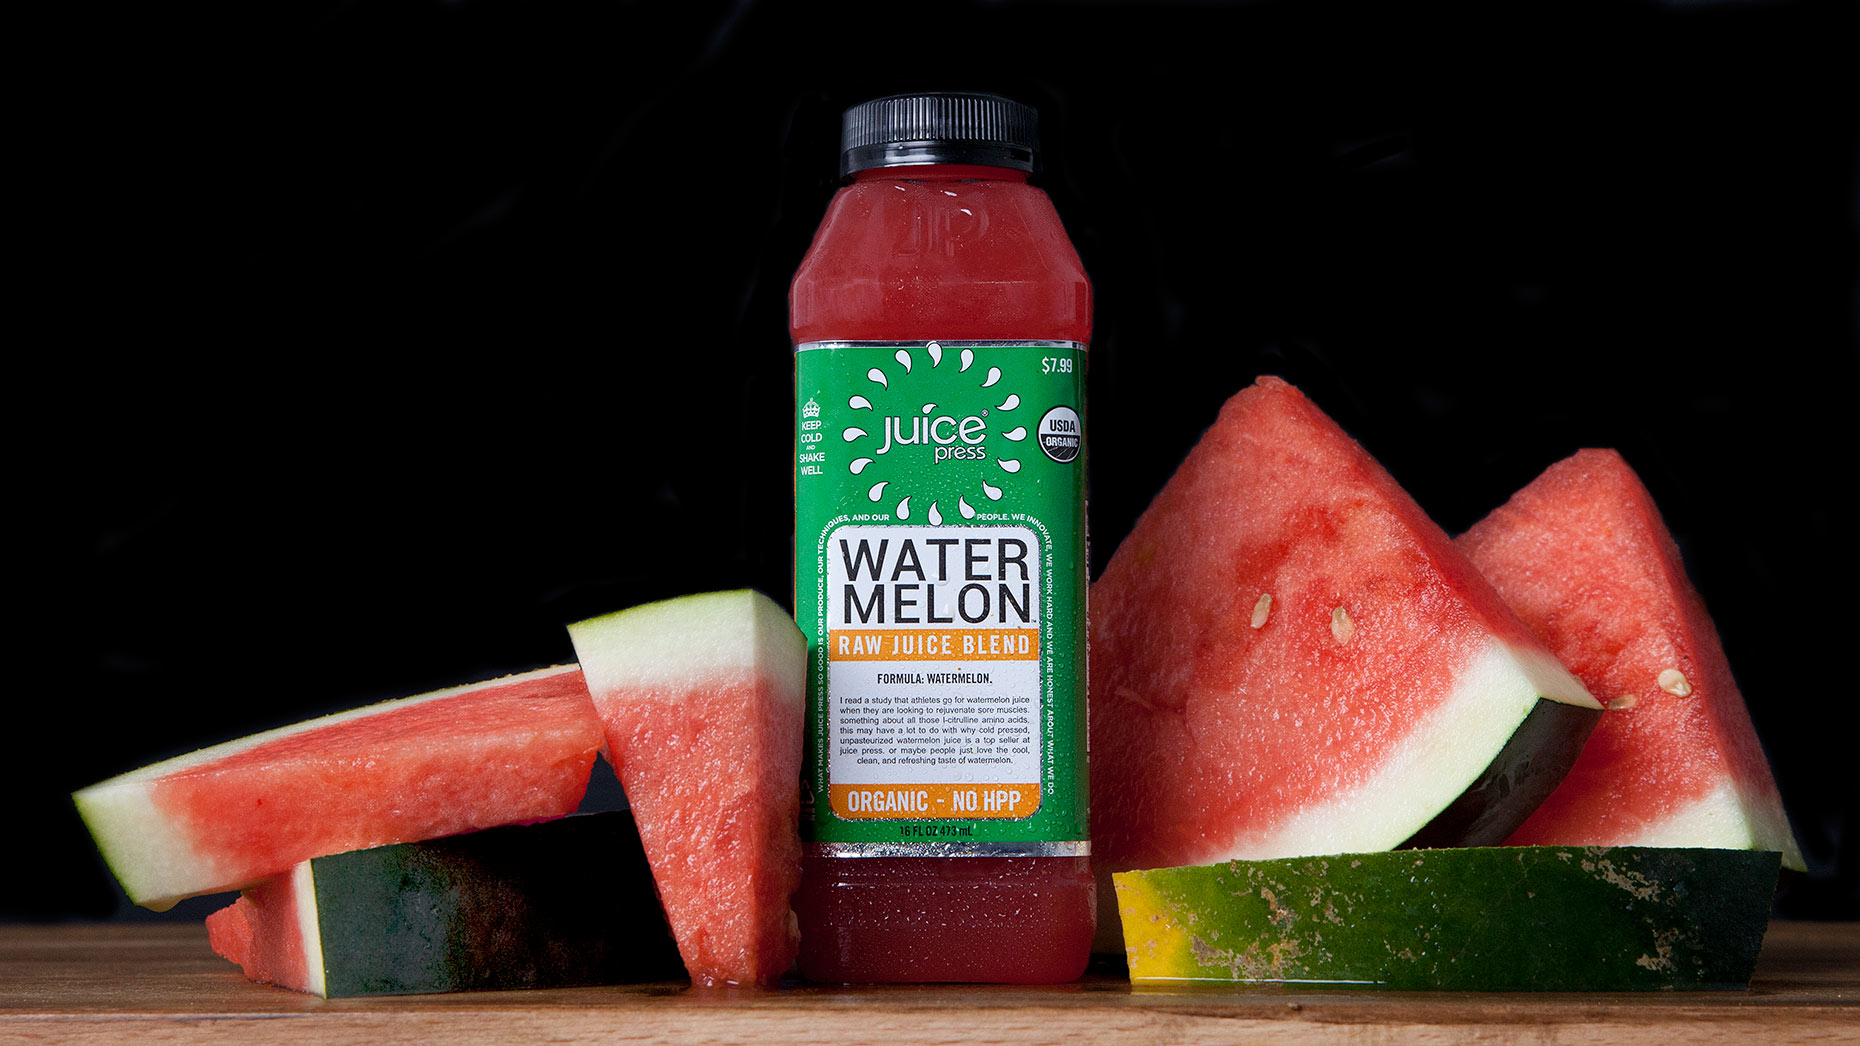 JP_watermelon_bottle_highres_for_web